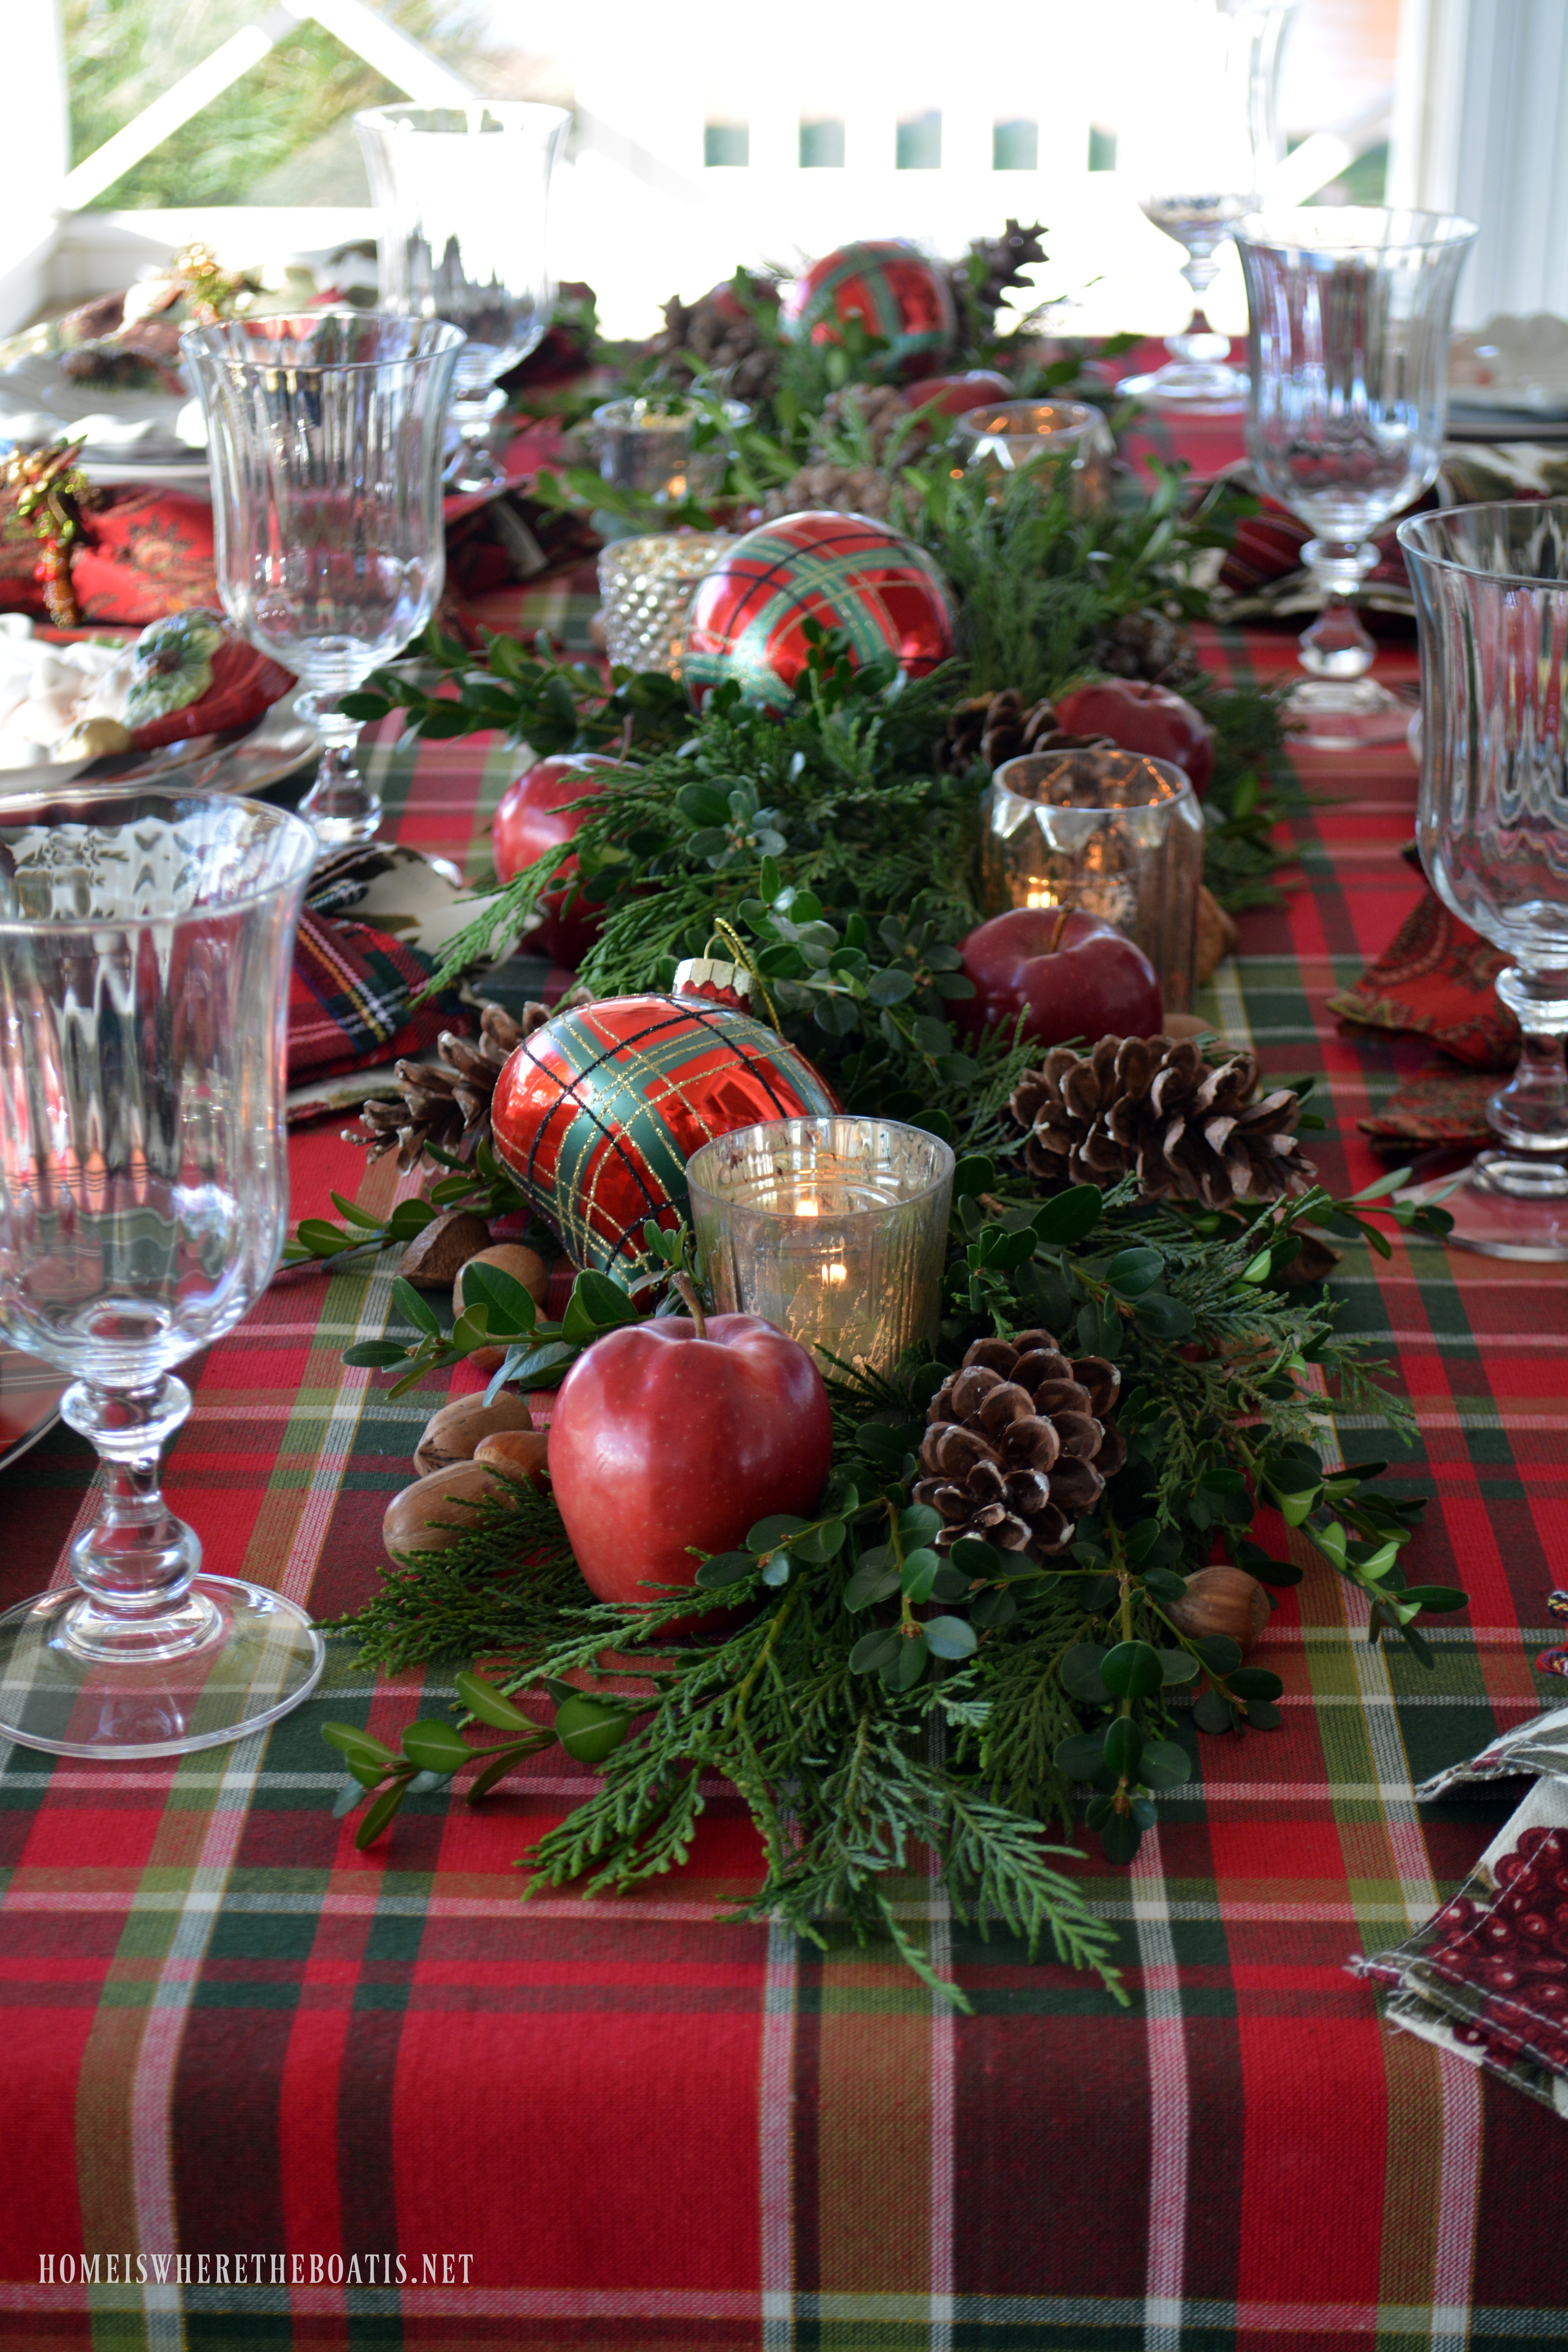 To Build The Natural Greenery Table Runner, Start With Branches Or Pieces  Of Leyland Cypress Or The Greenery Of Your Choice. I Cut 12  18 Inch  Lengths Of ...